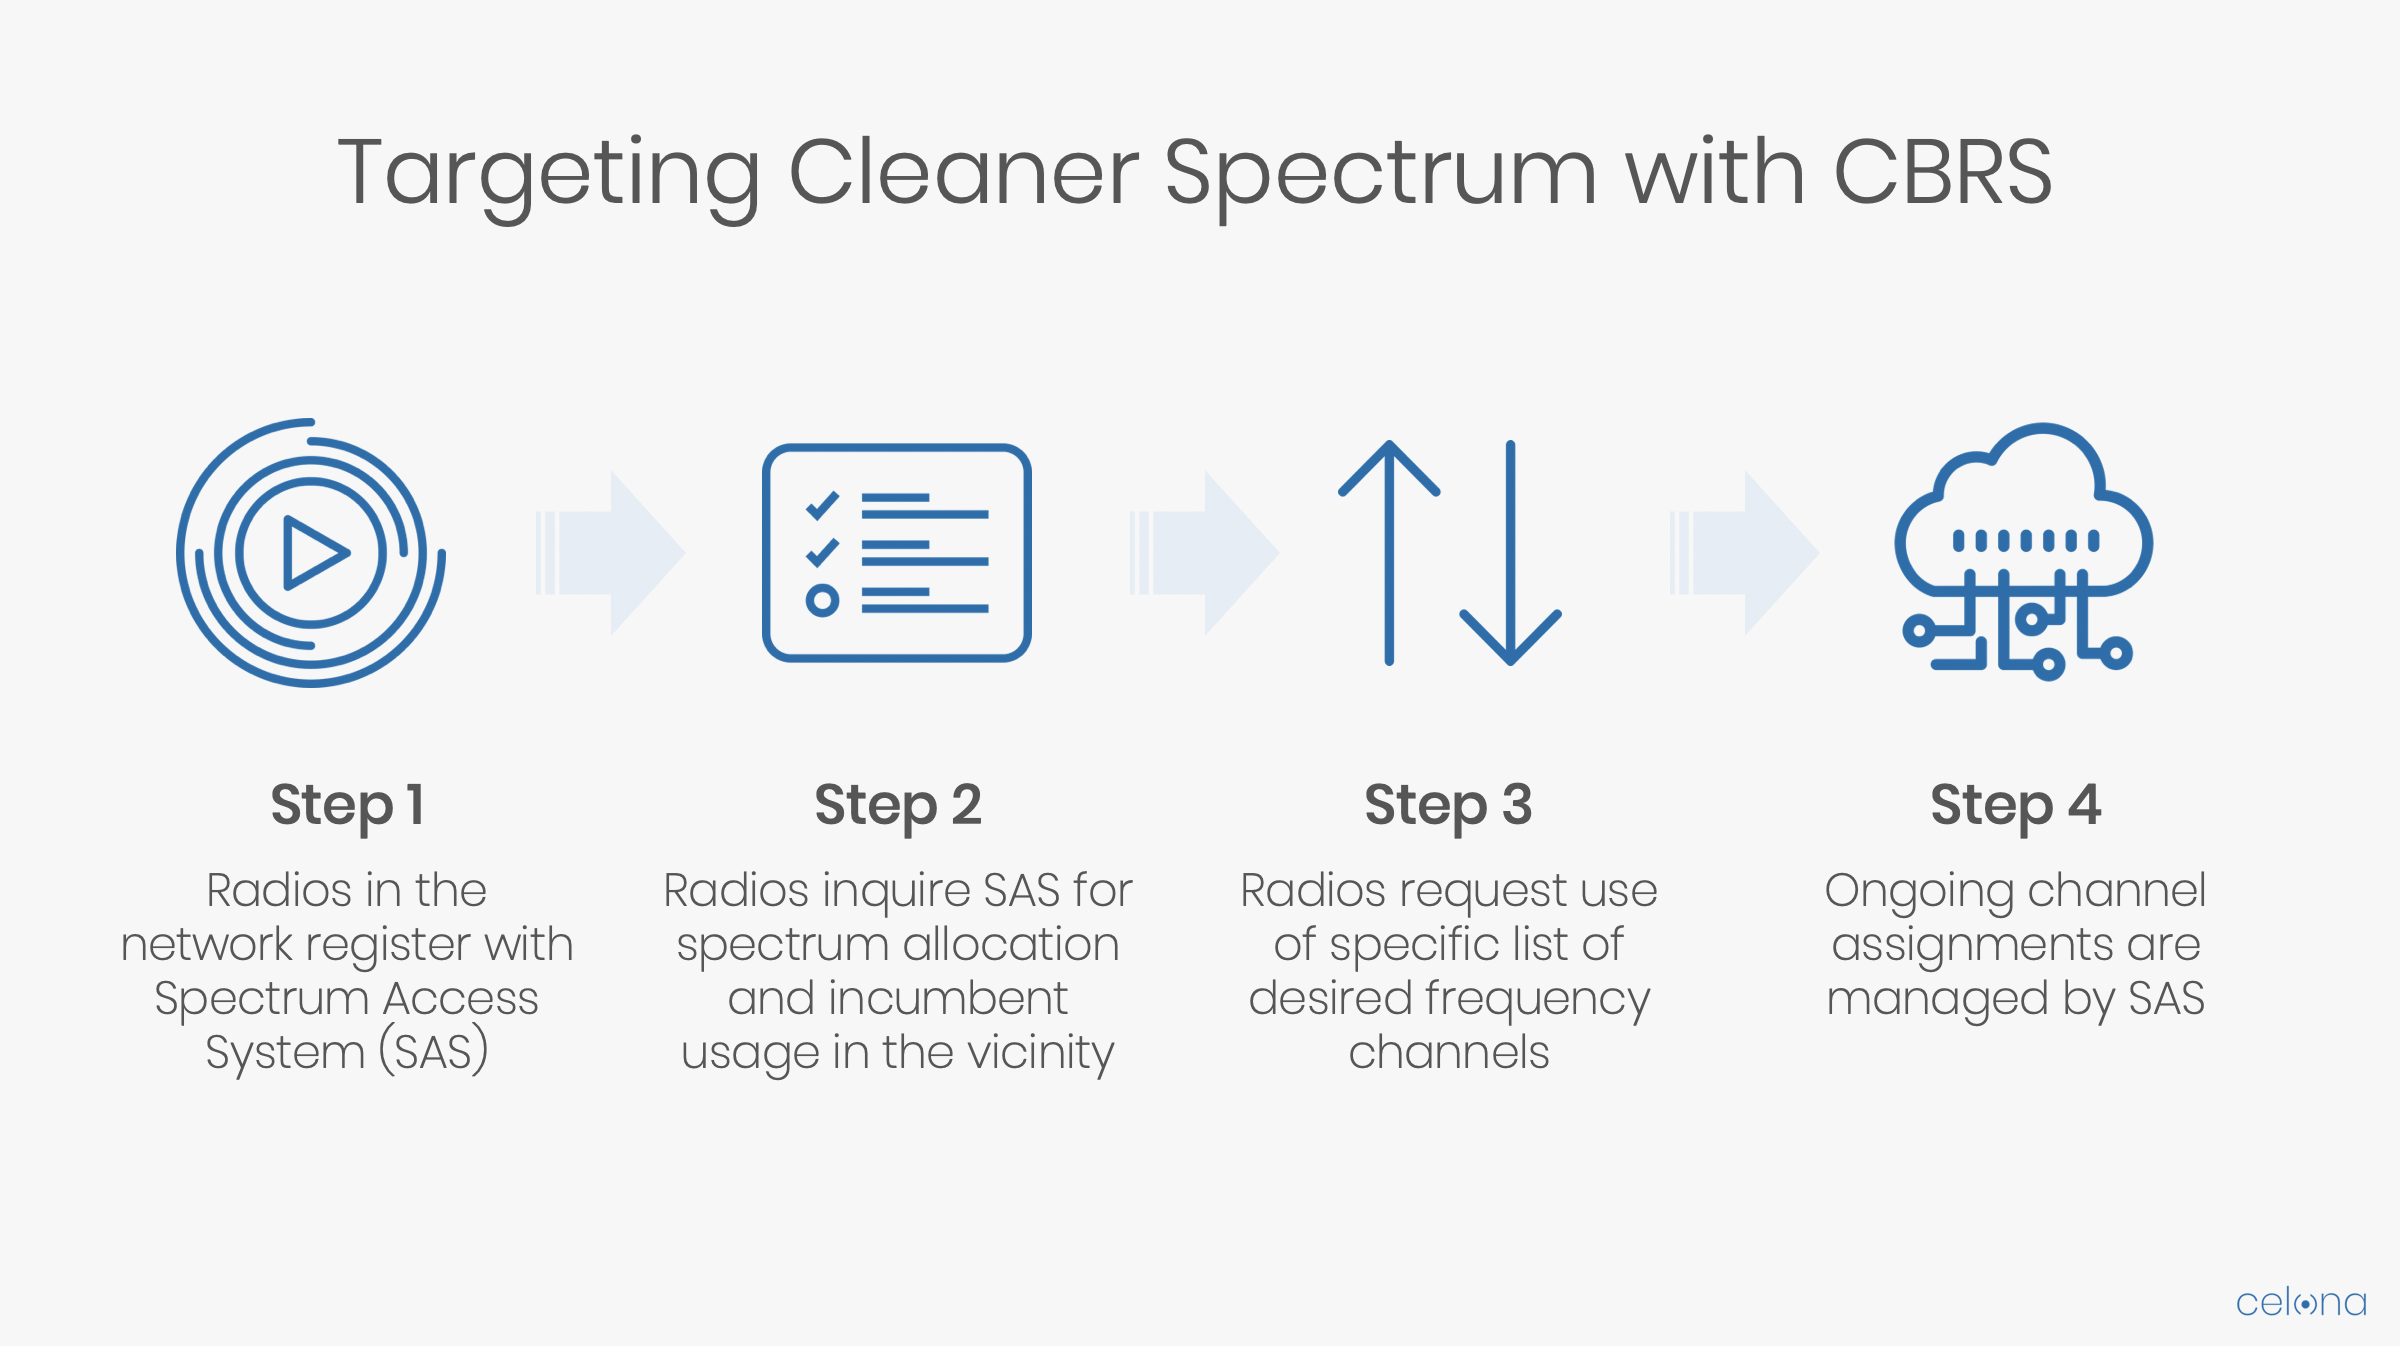 Targeting Cleaner Spectrum with CBRS